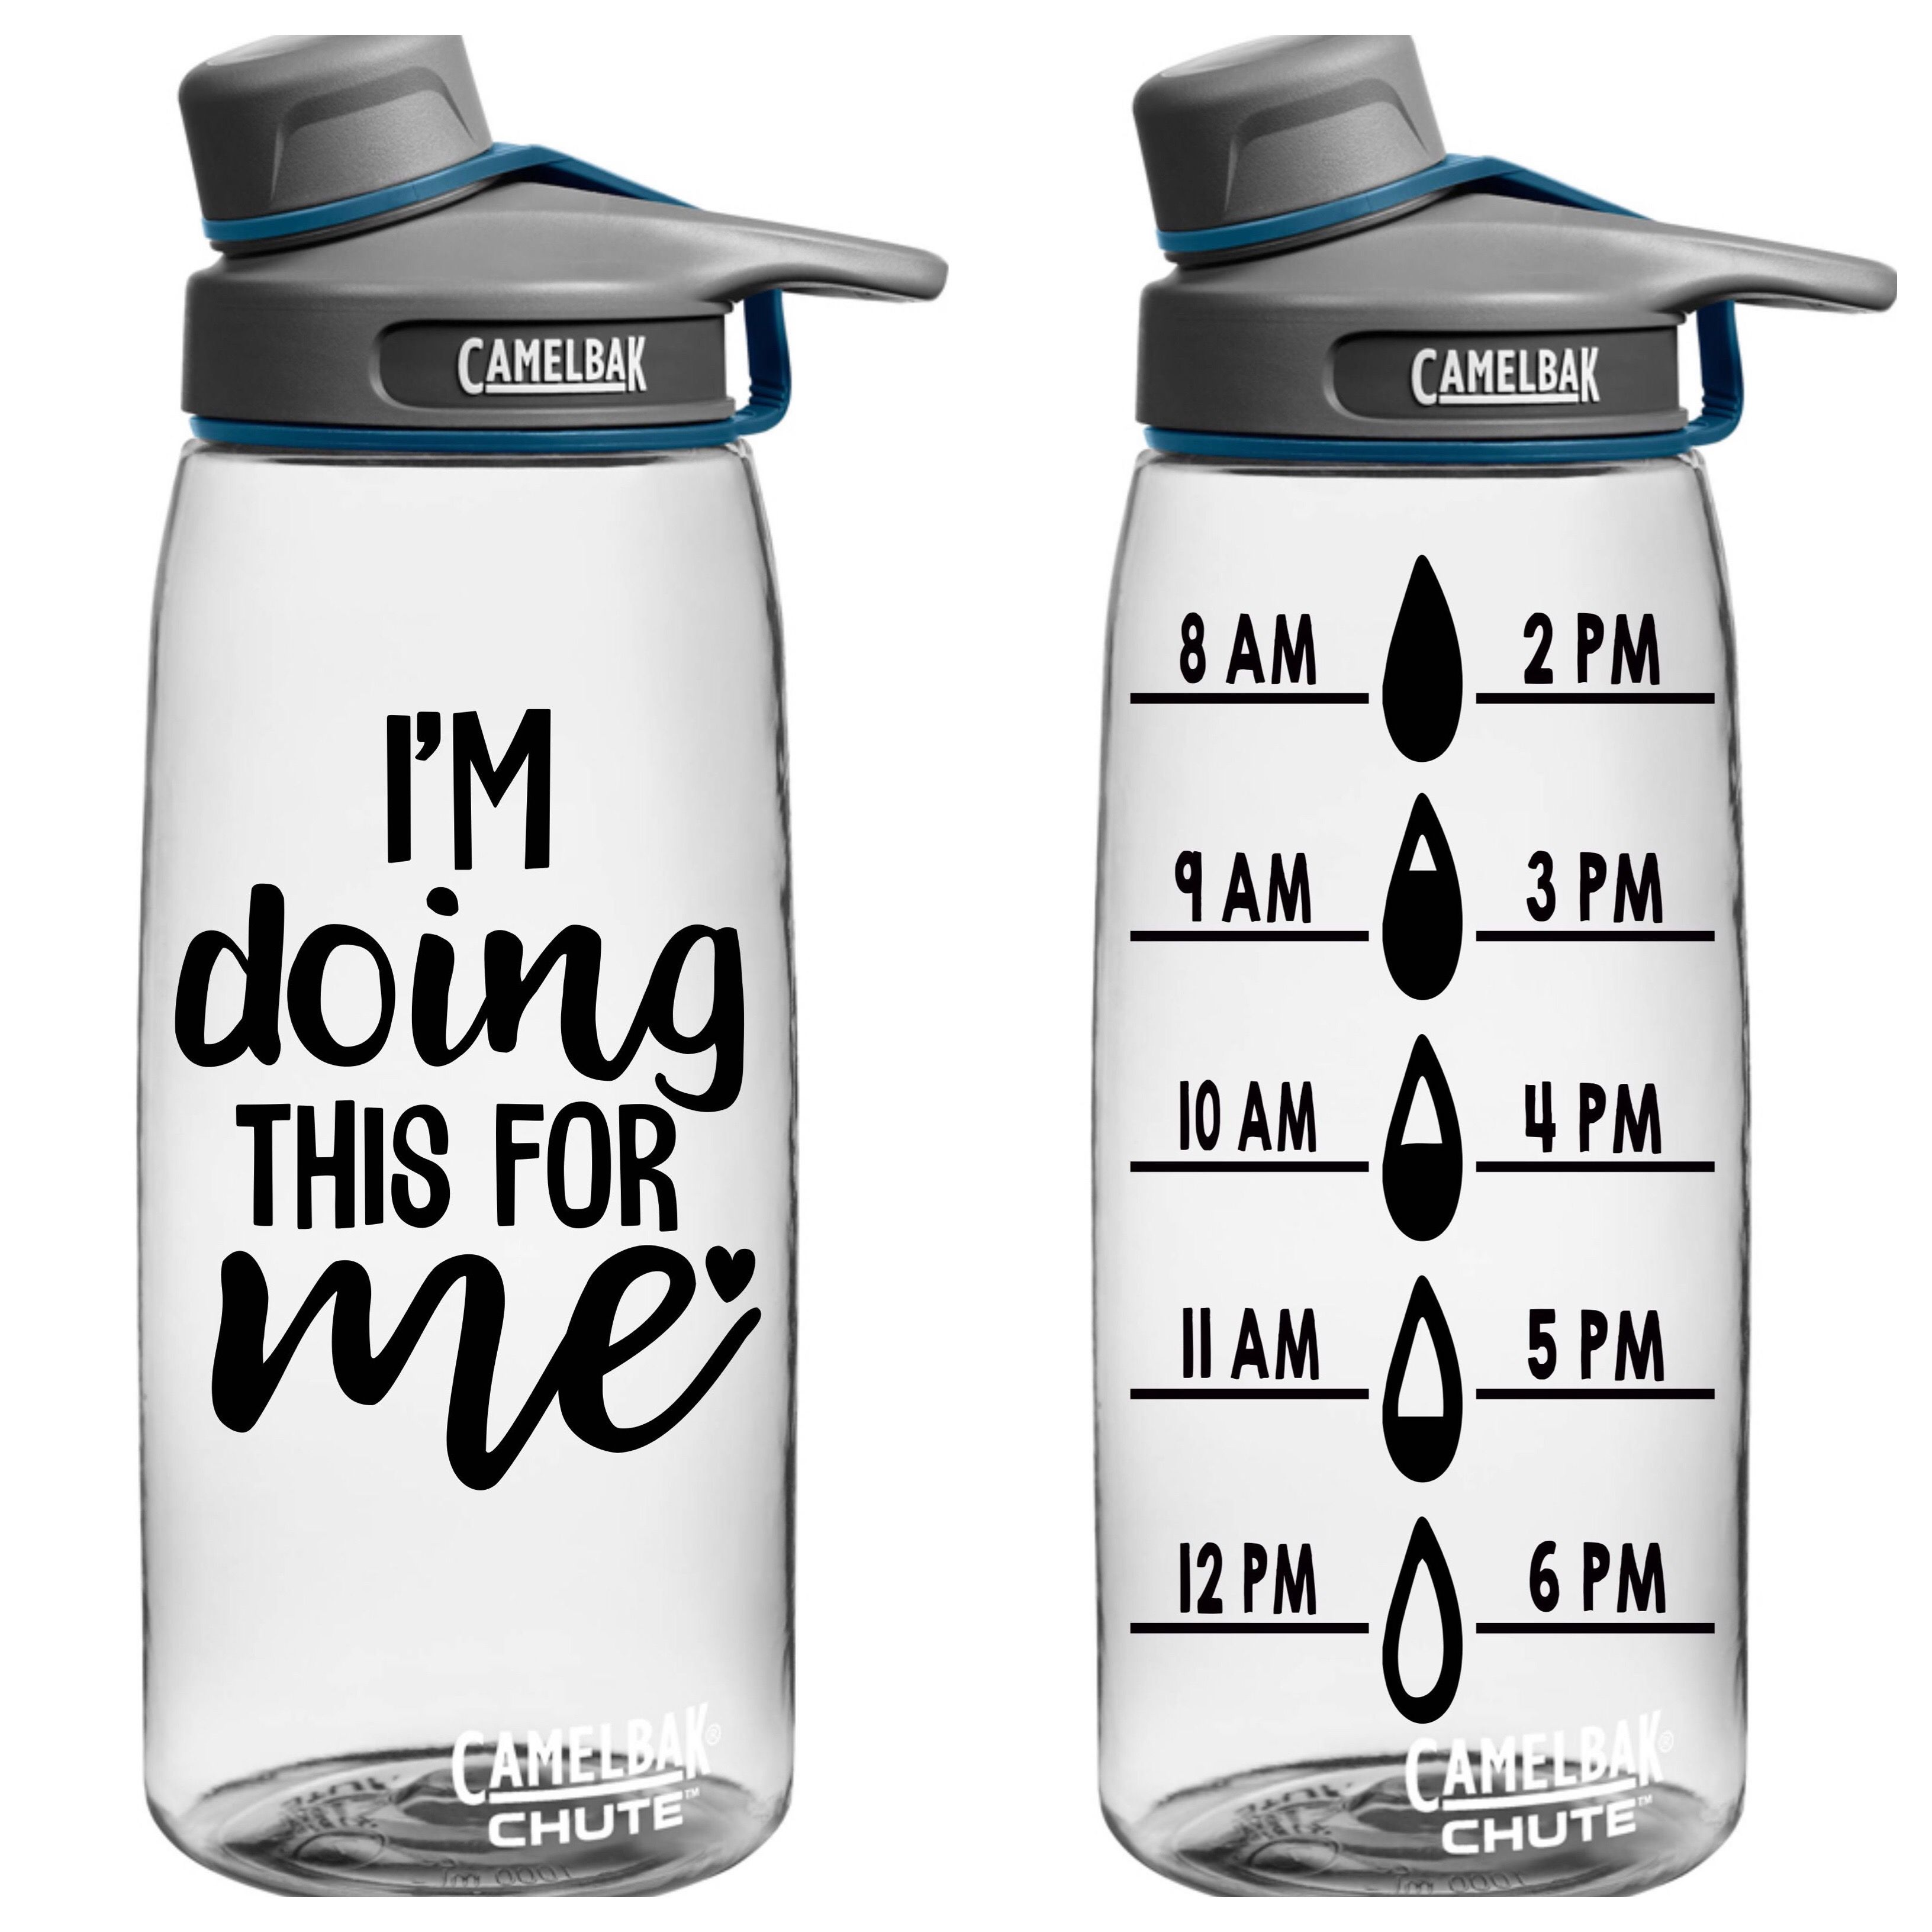 gym decal workout decal sore worth it decal muscle decal water bottle decal